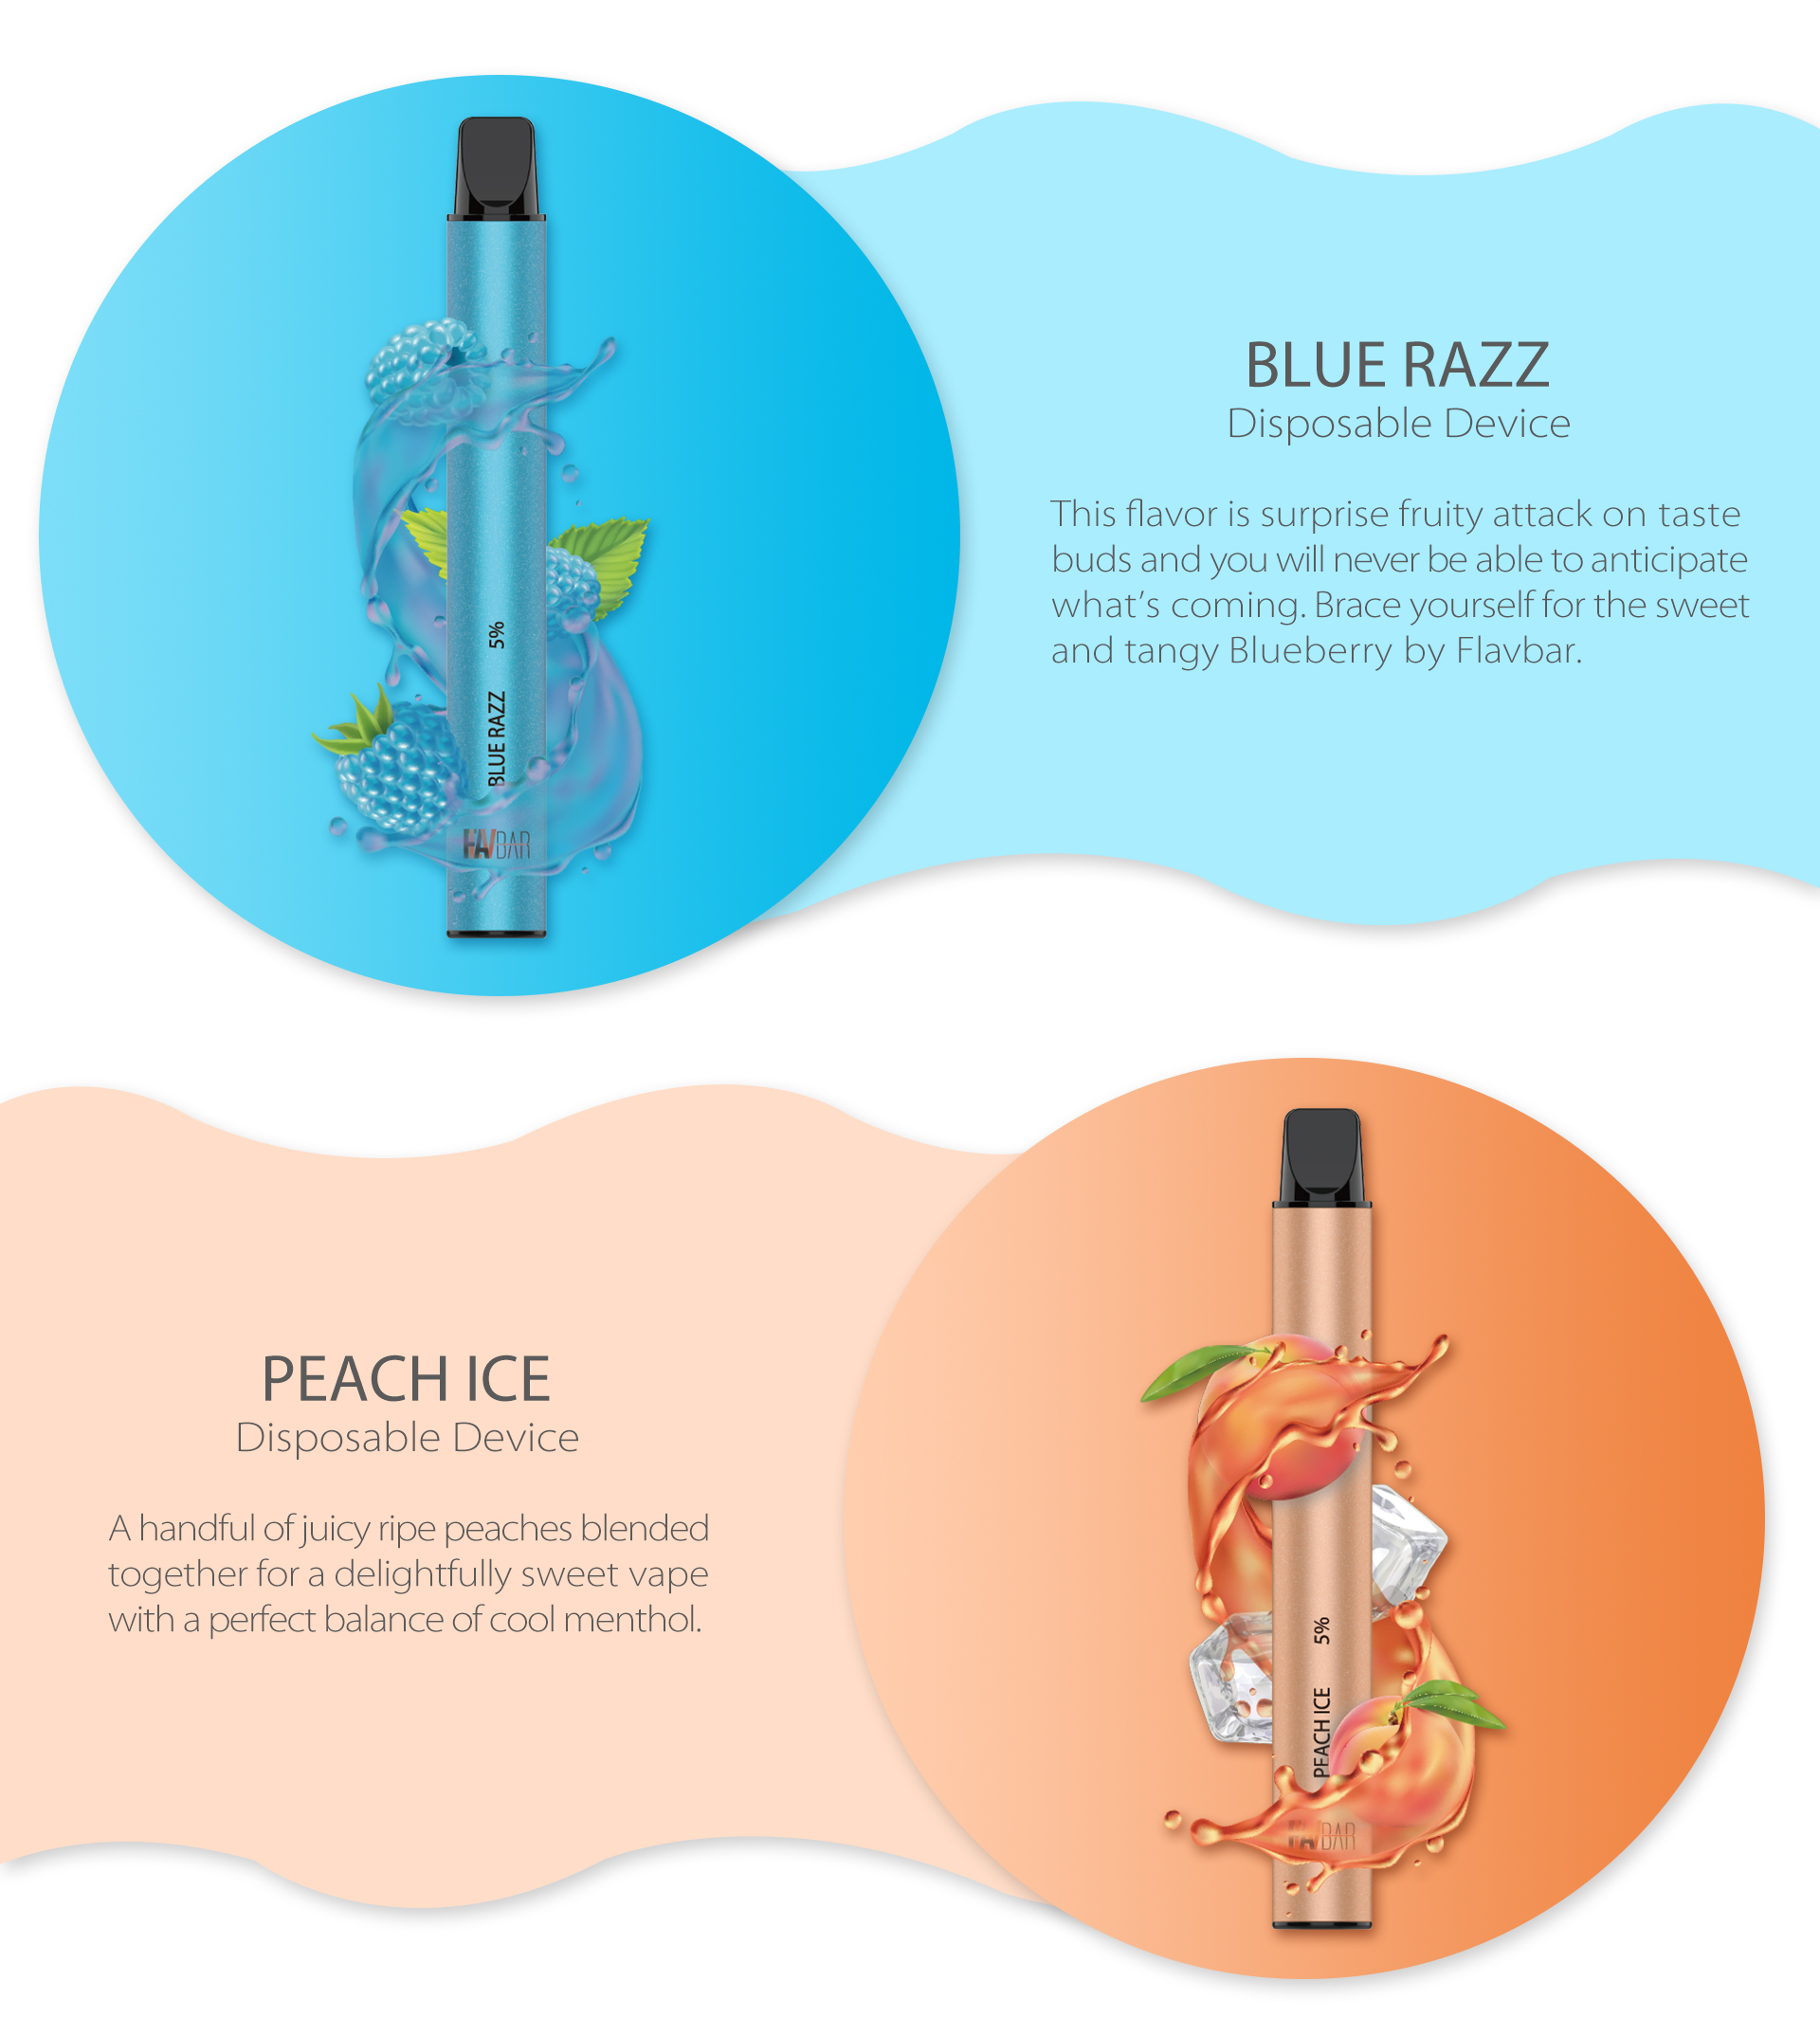 FLAVBAR v2 disposable device blue razz and peach ice flavor.